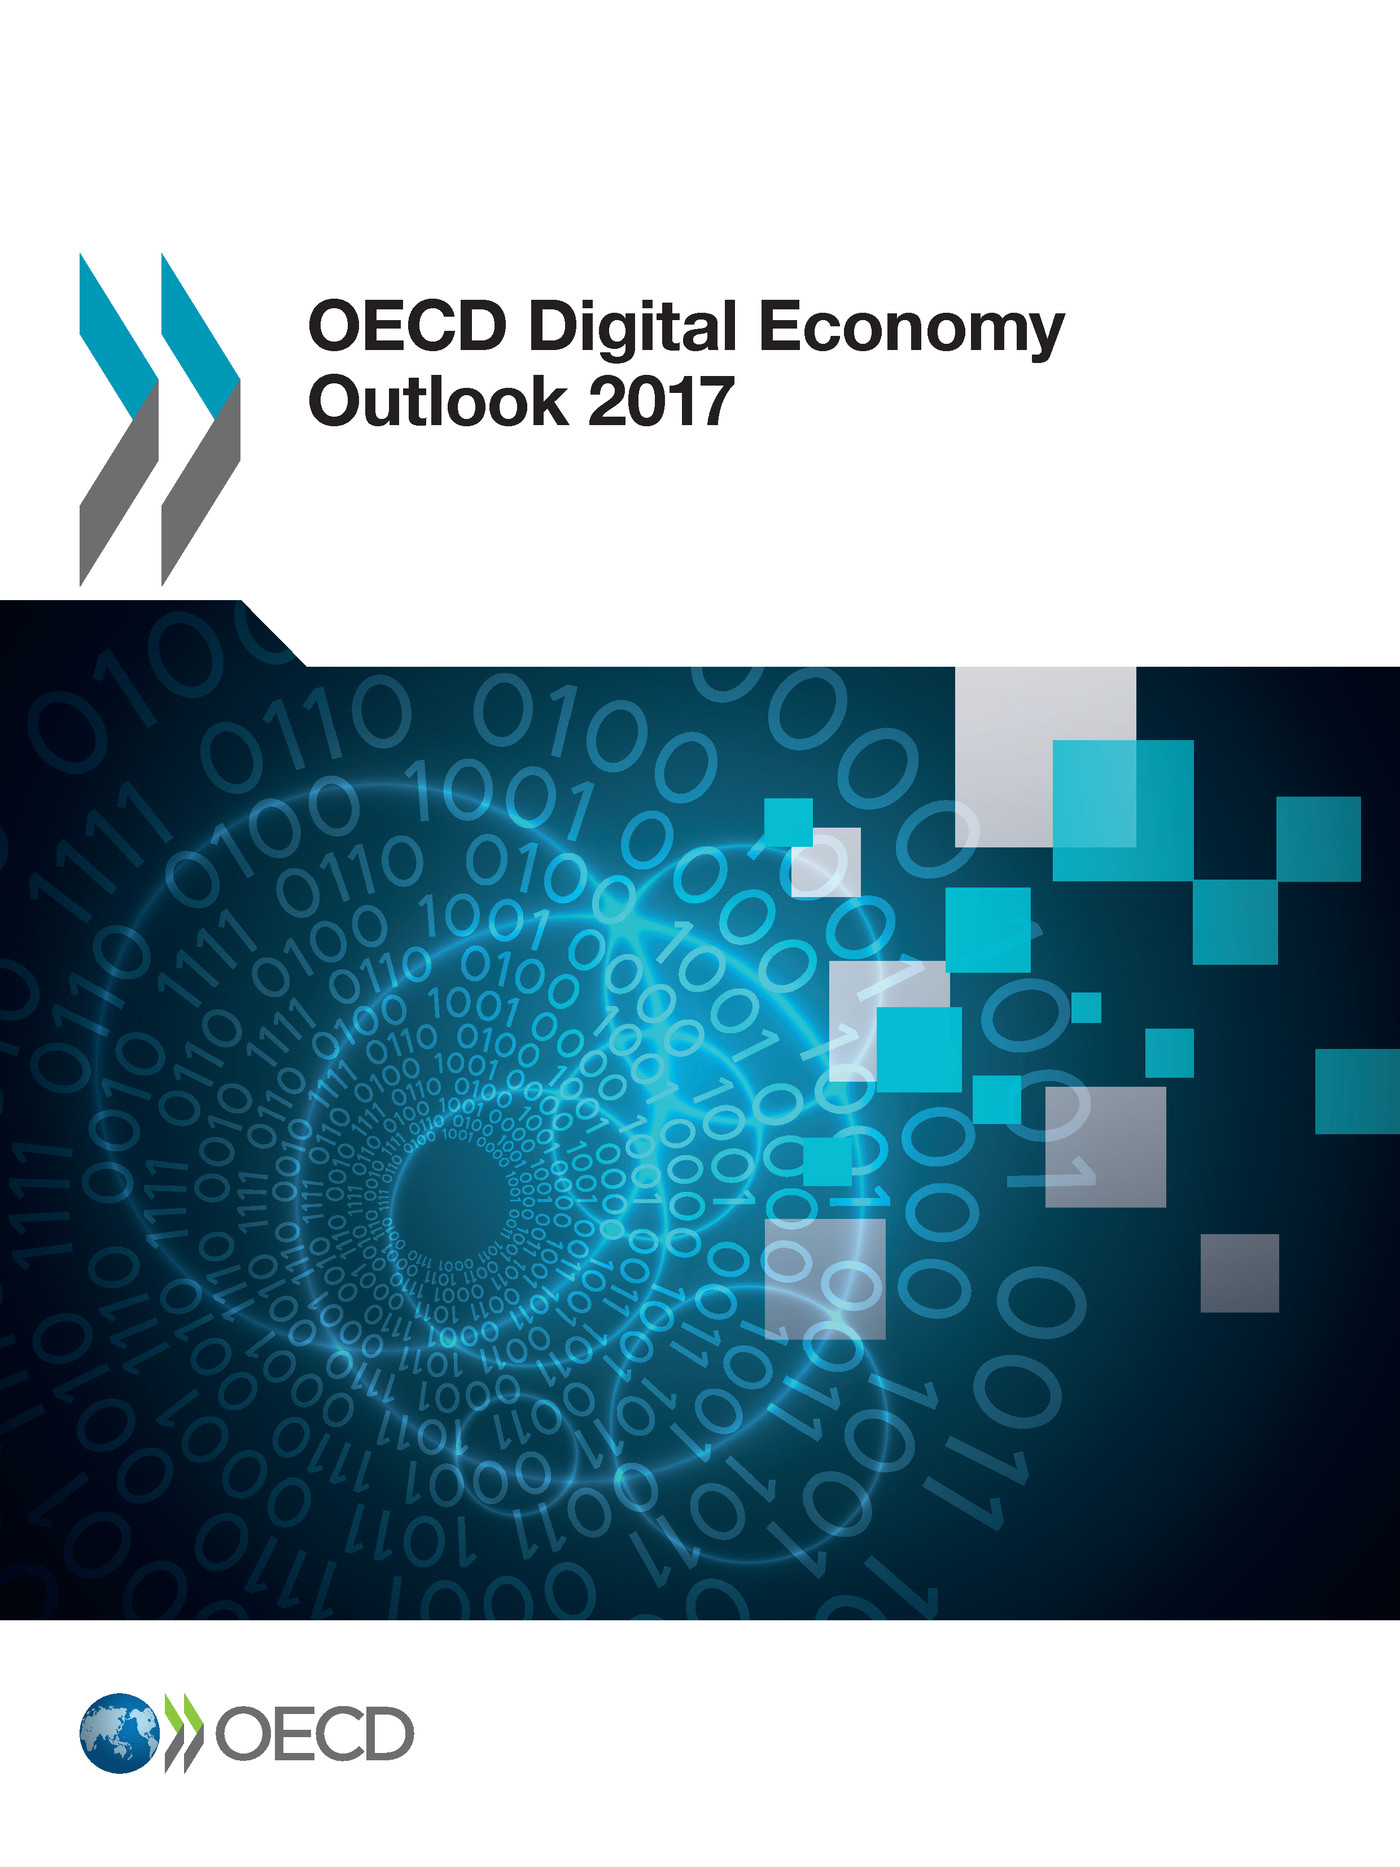 OECD Digital Economy Outlook 2017 De  Collectif - OCDE / OECD